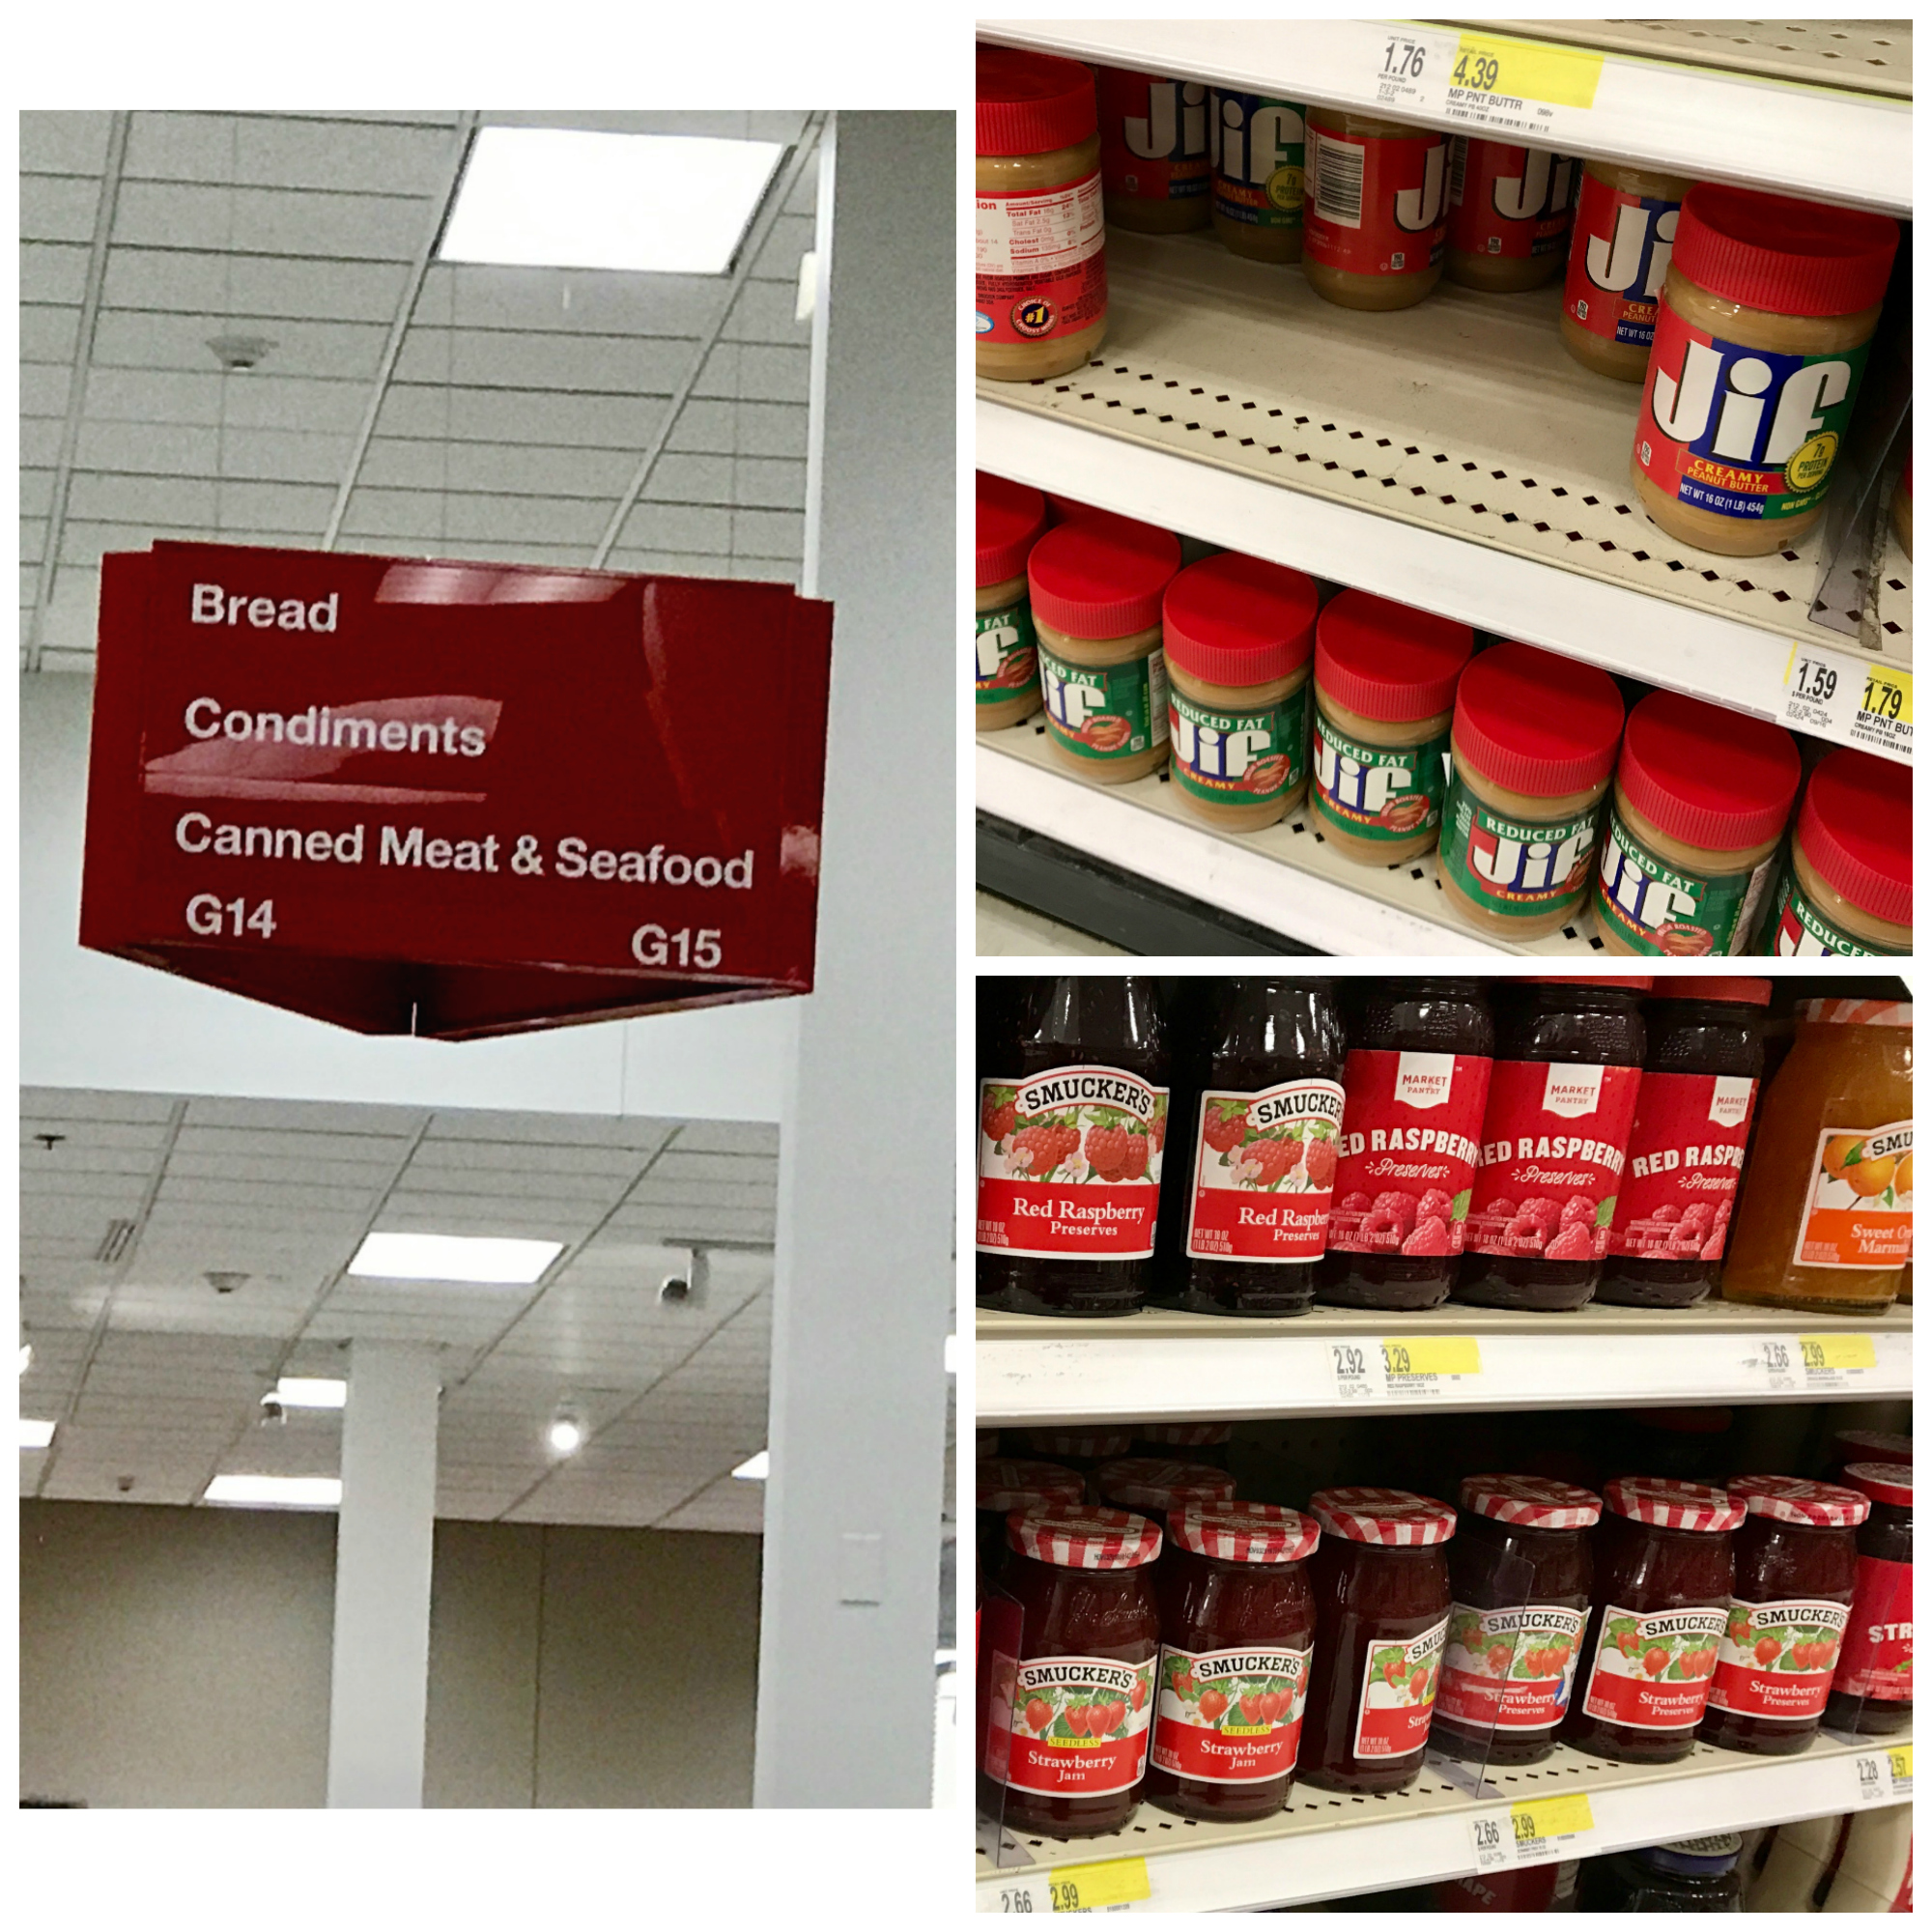 Smuckers and JIF Products at Target